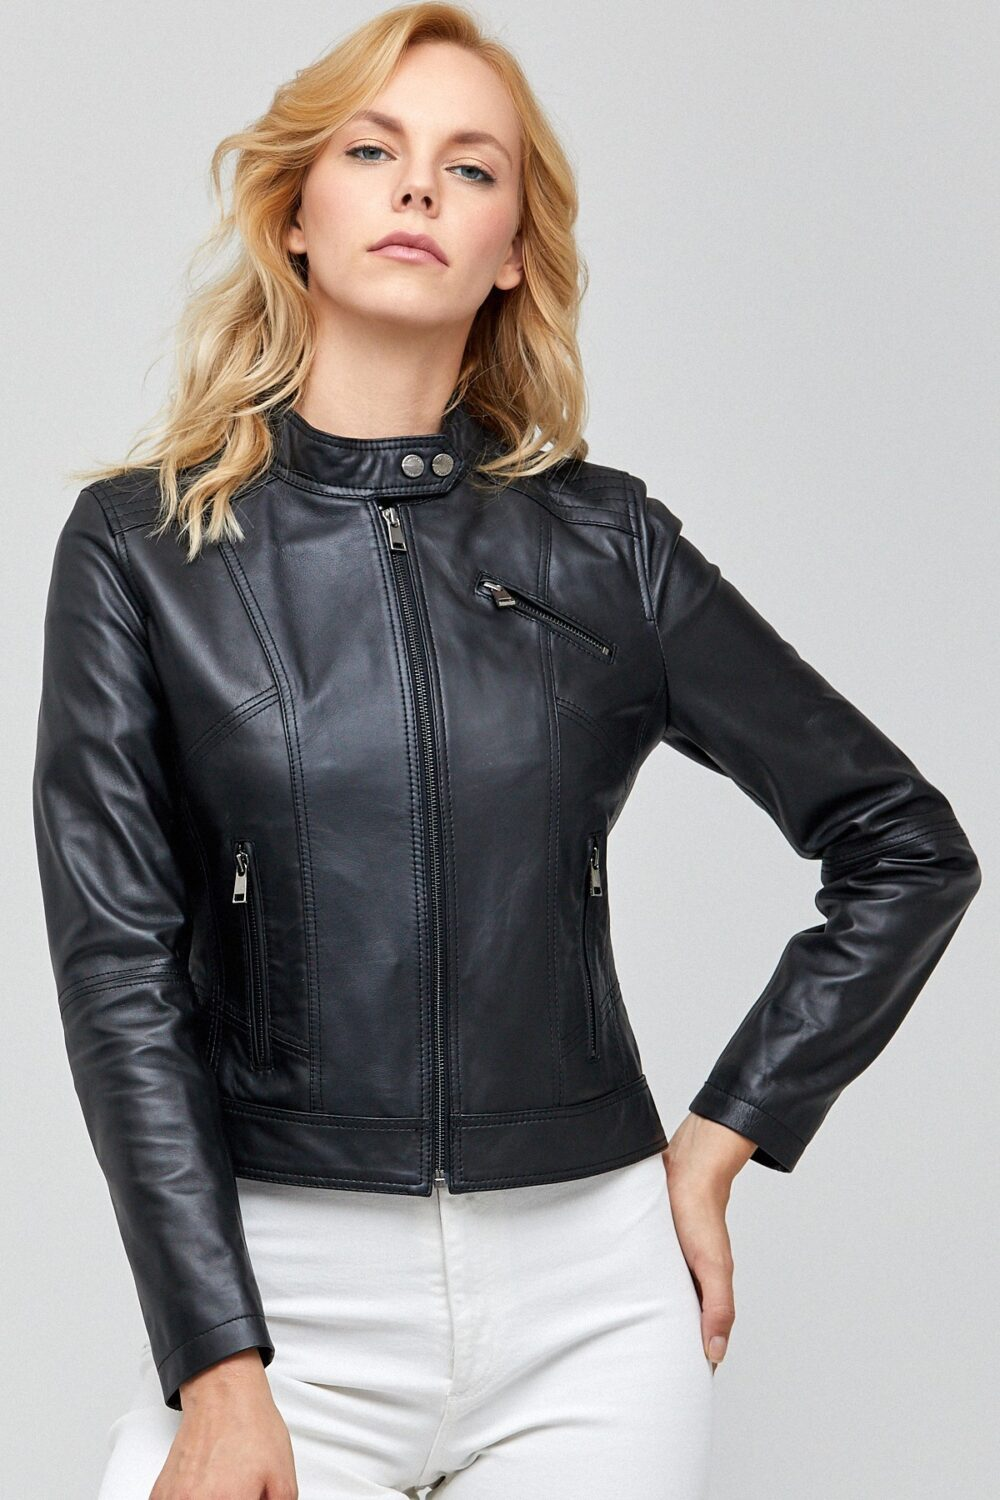 Burberry Leather Motorcycle Jacket